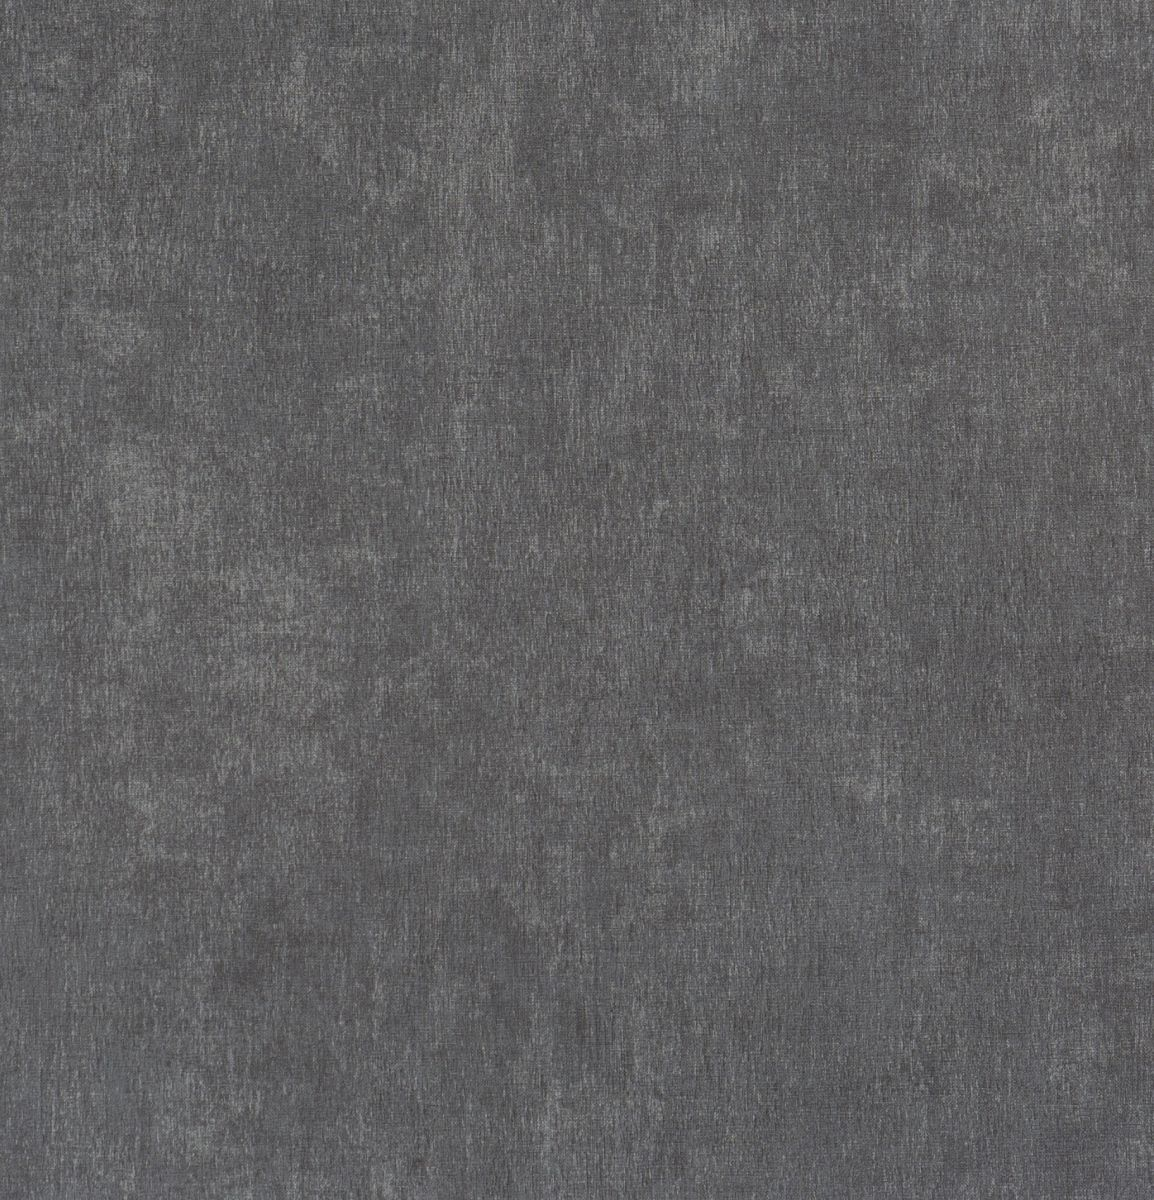 High Quality Wallpapers And Fabrics Non Woven Wallpaper Images, Photos, Reviews